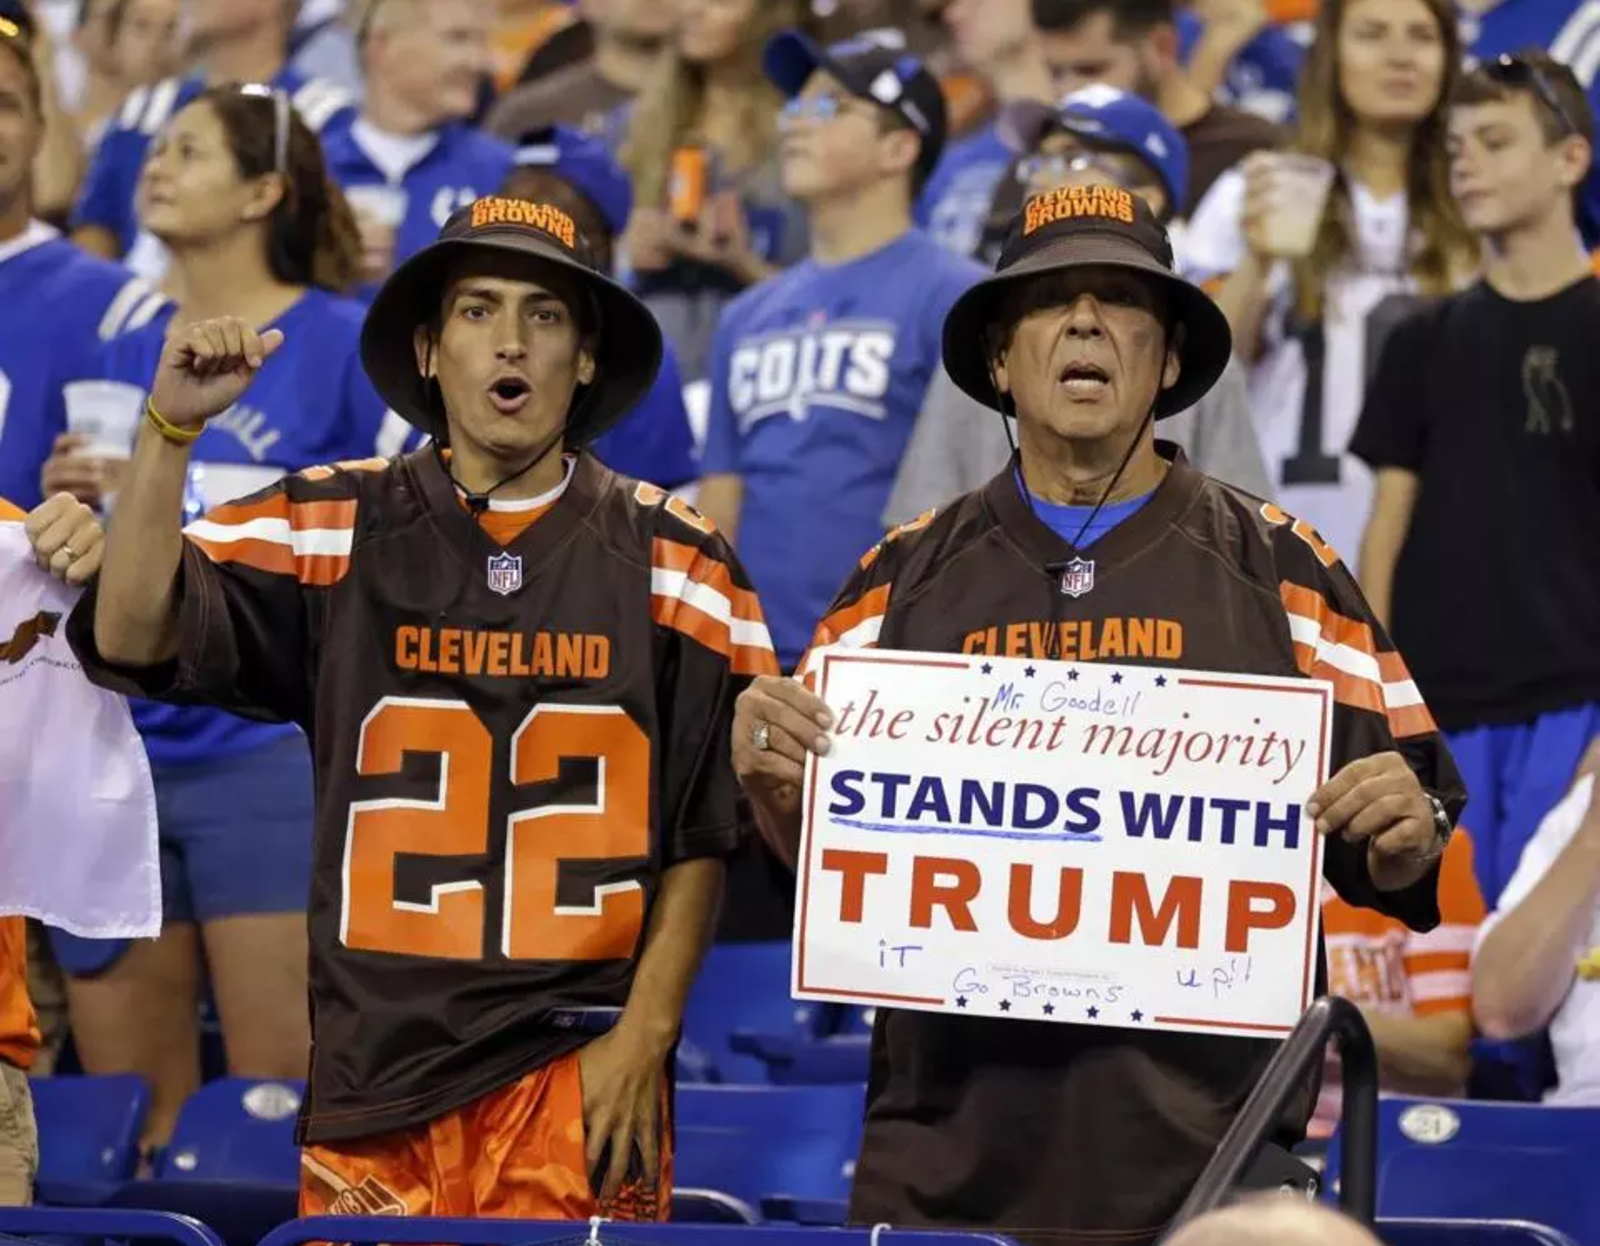 Why Trump voters want to boycott the NFL    September 28, 2017